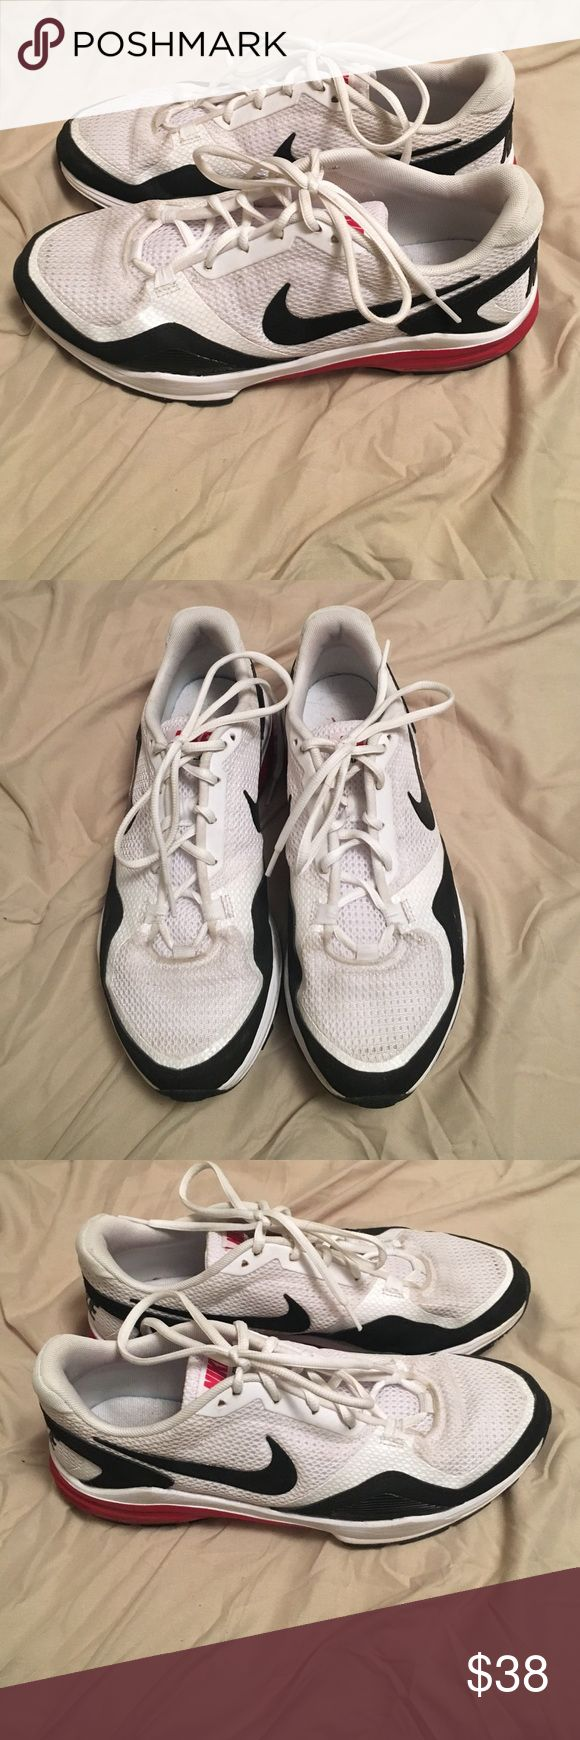 Red and white Nike Lunar Edge Red and white Nike Lunar Edge shoes that are light and great for athletic training. Size 10, and worn a few times. Great looking shoe and In very good condition. Nike Shoes Athletic Shoes